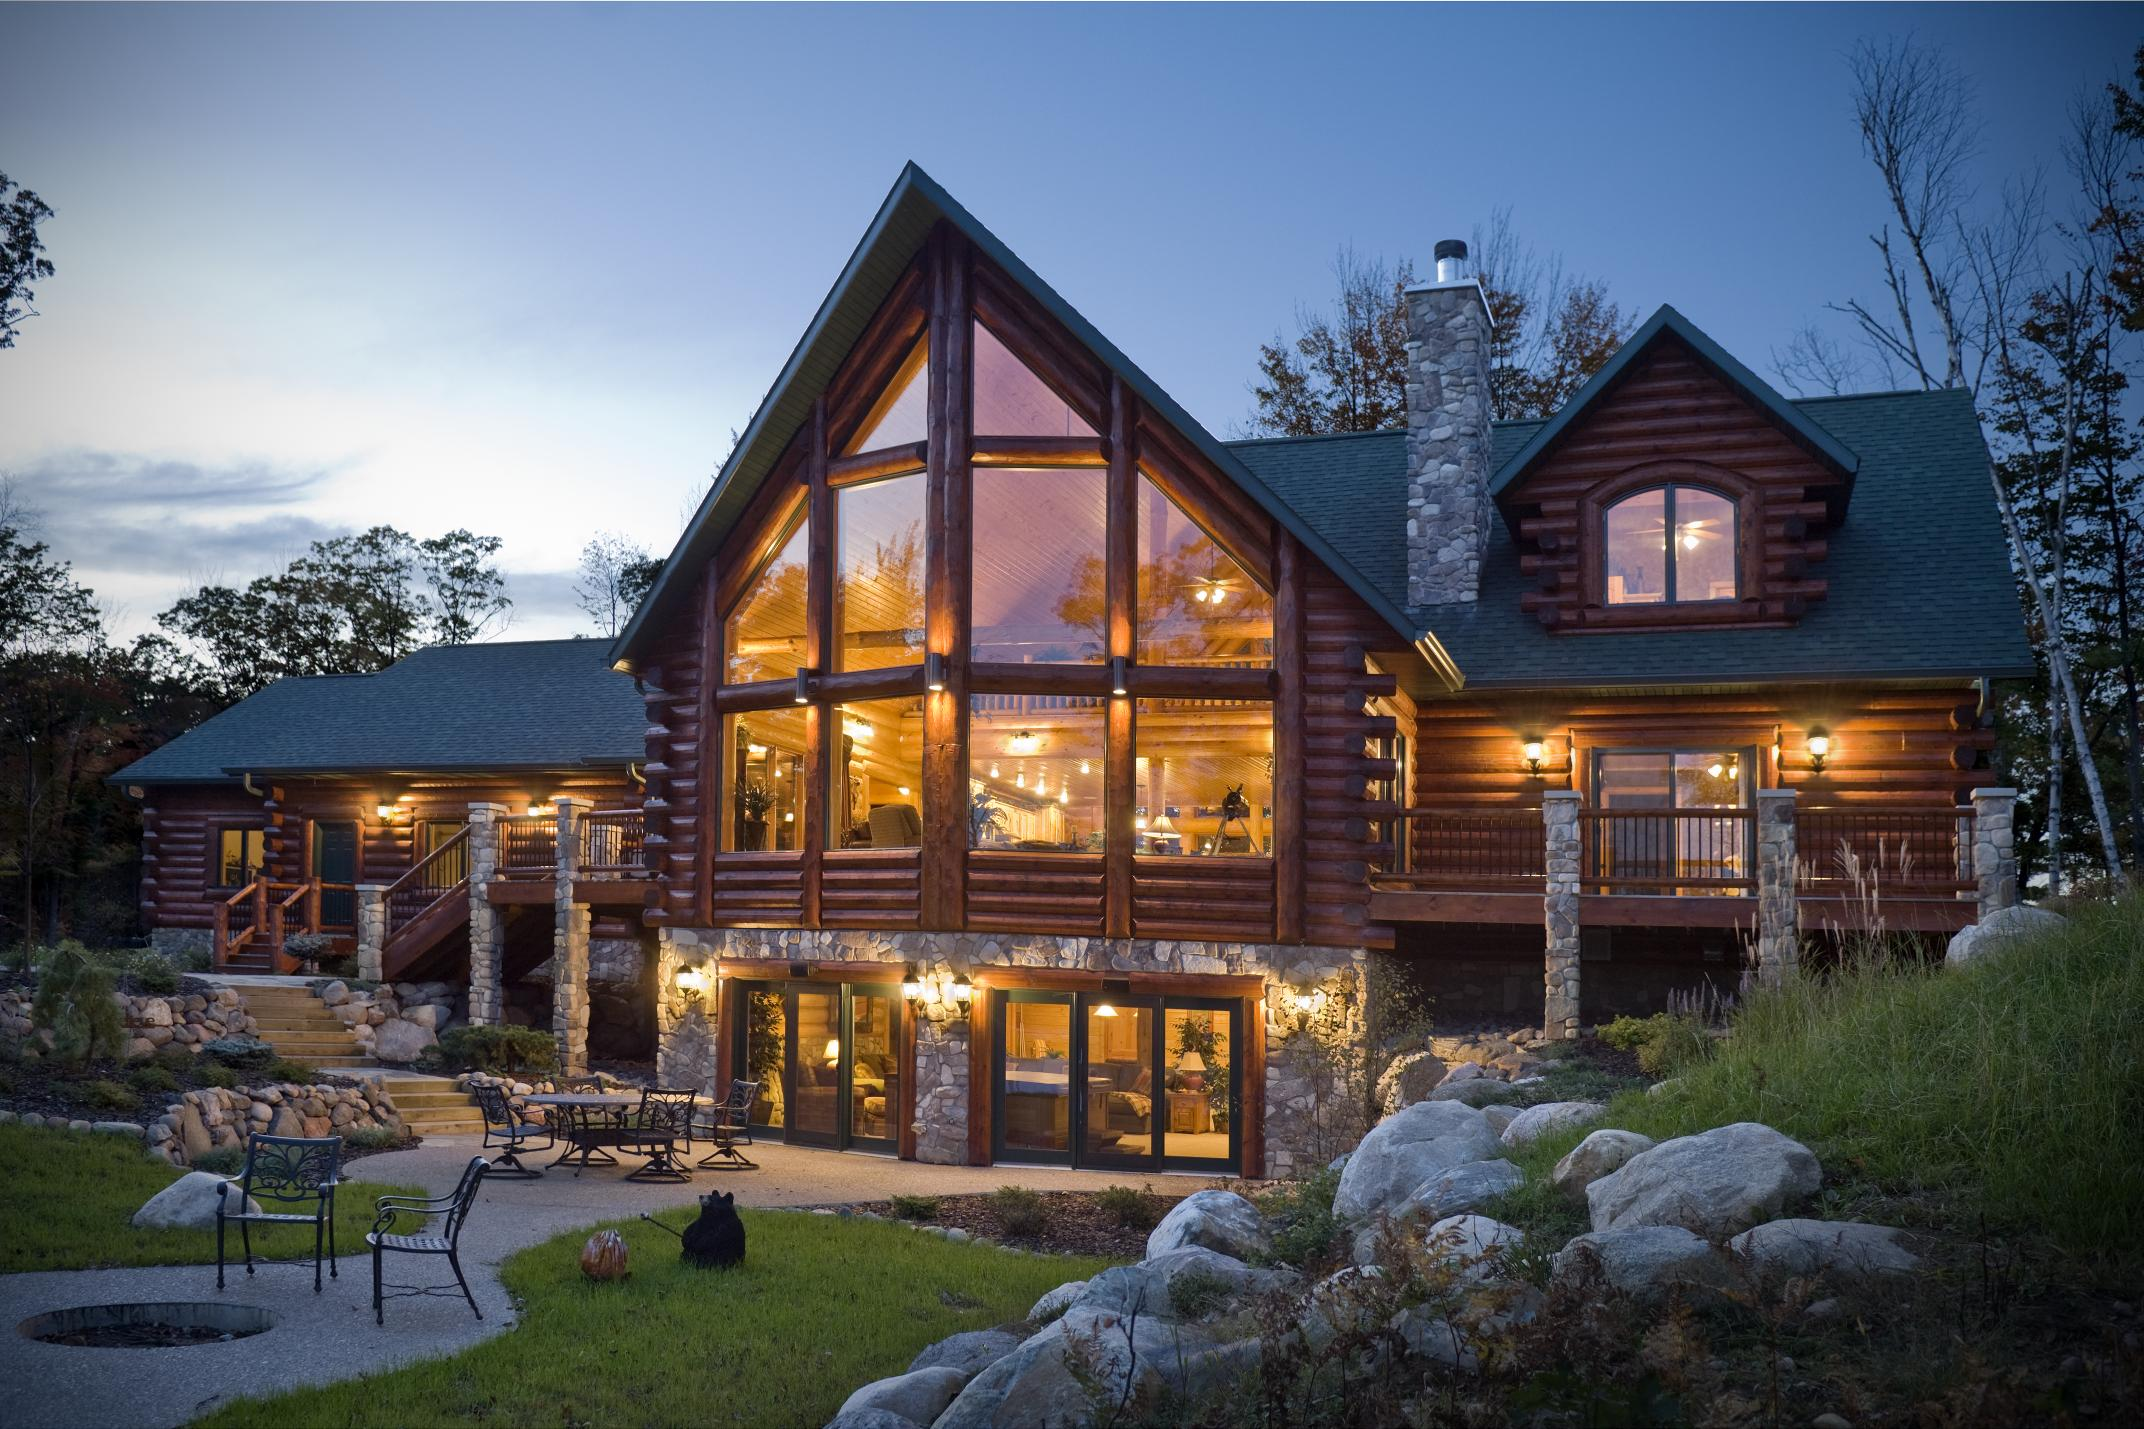 Sashco log home products and golden eagle log homes expand for Luxury log homes